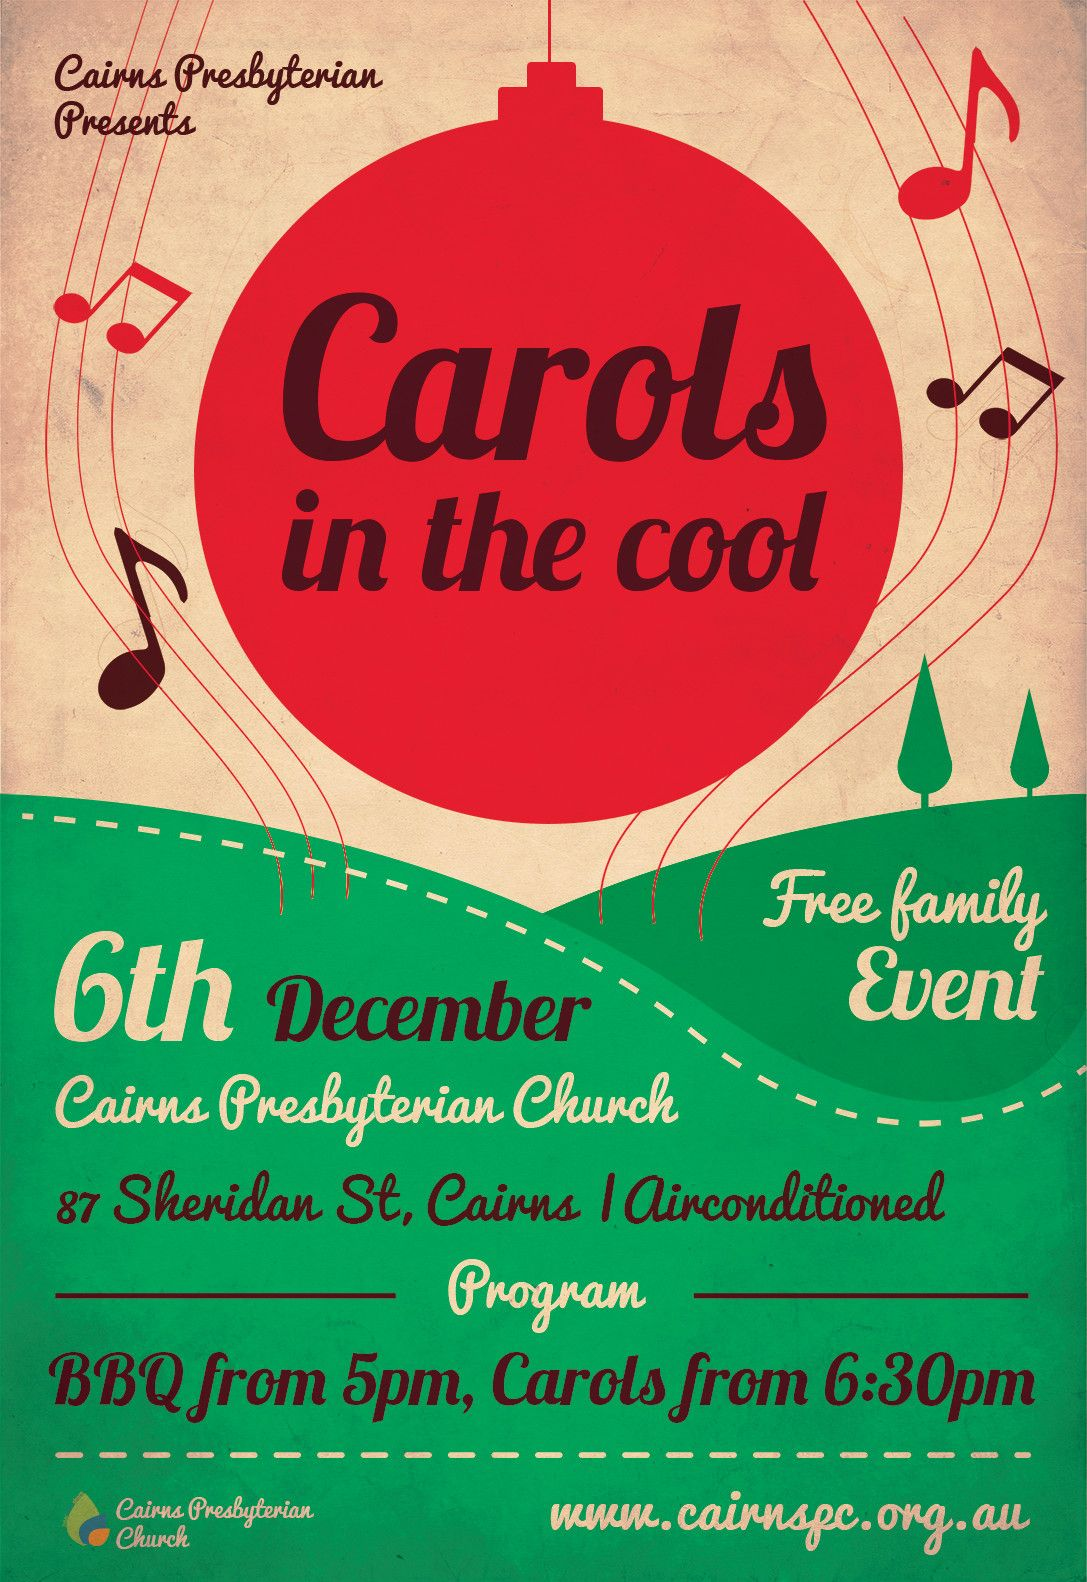 Carols Service Ad (used a template) Designs Pinterest